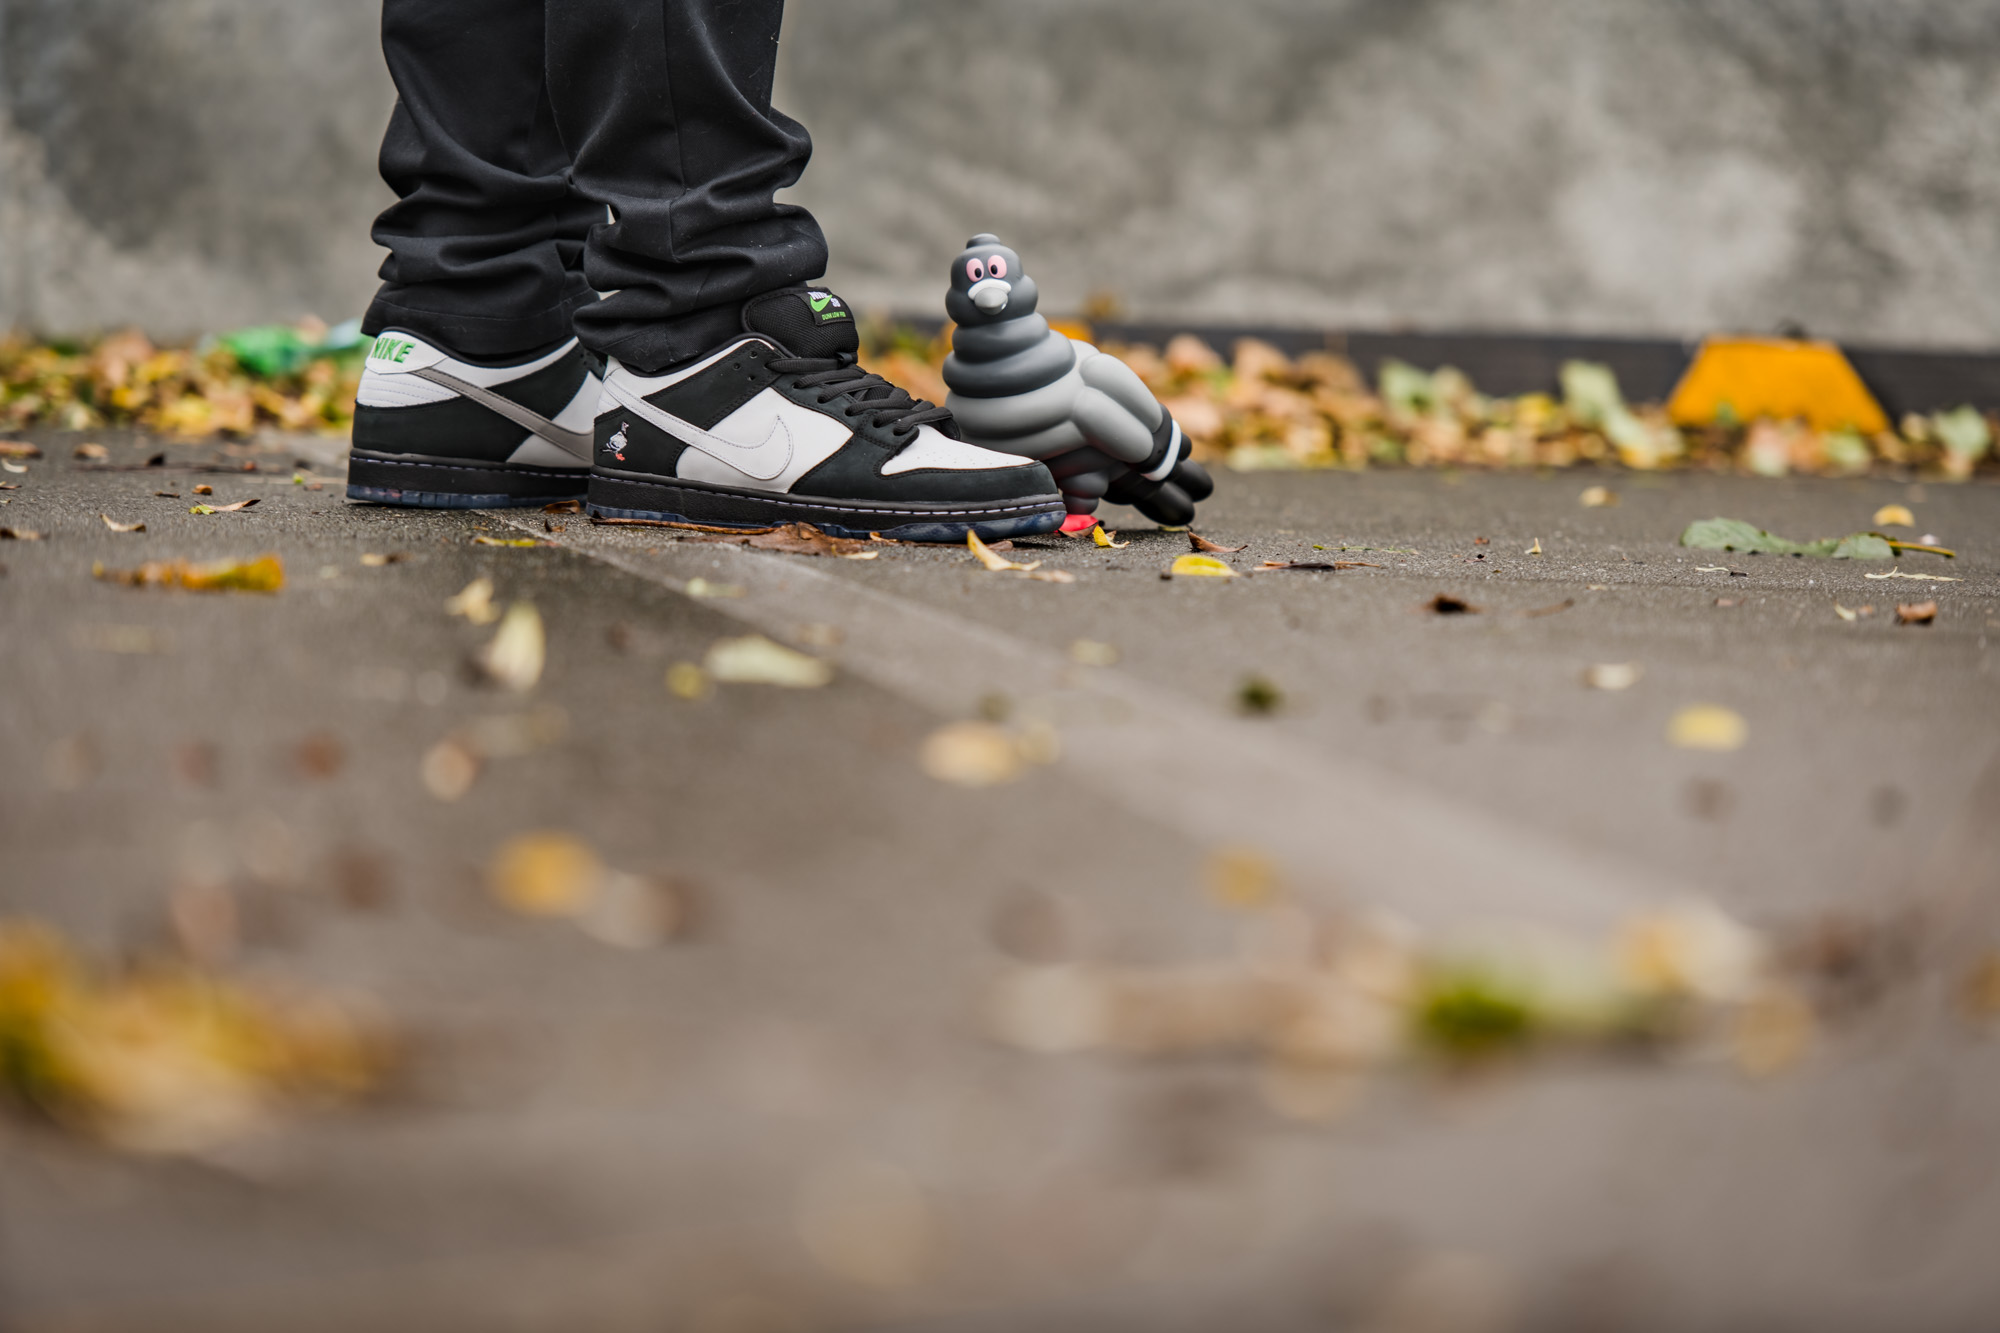 Nike SB Panda Pigeon finding its way home